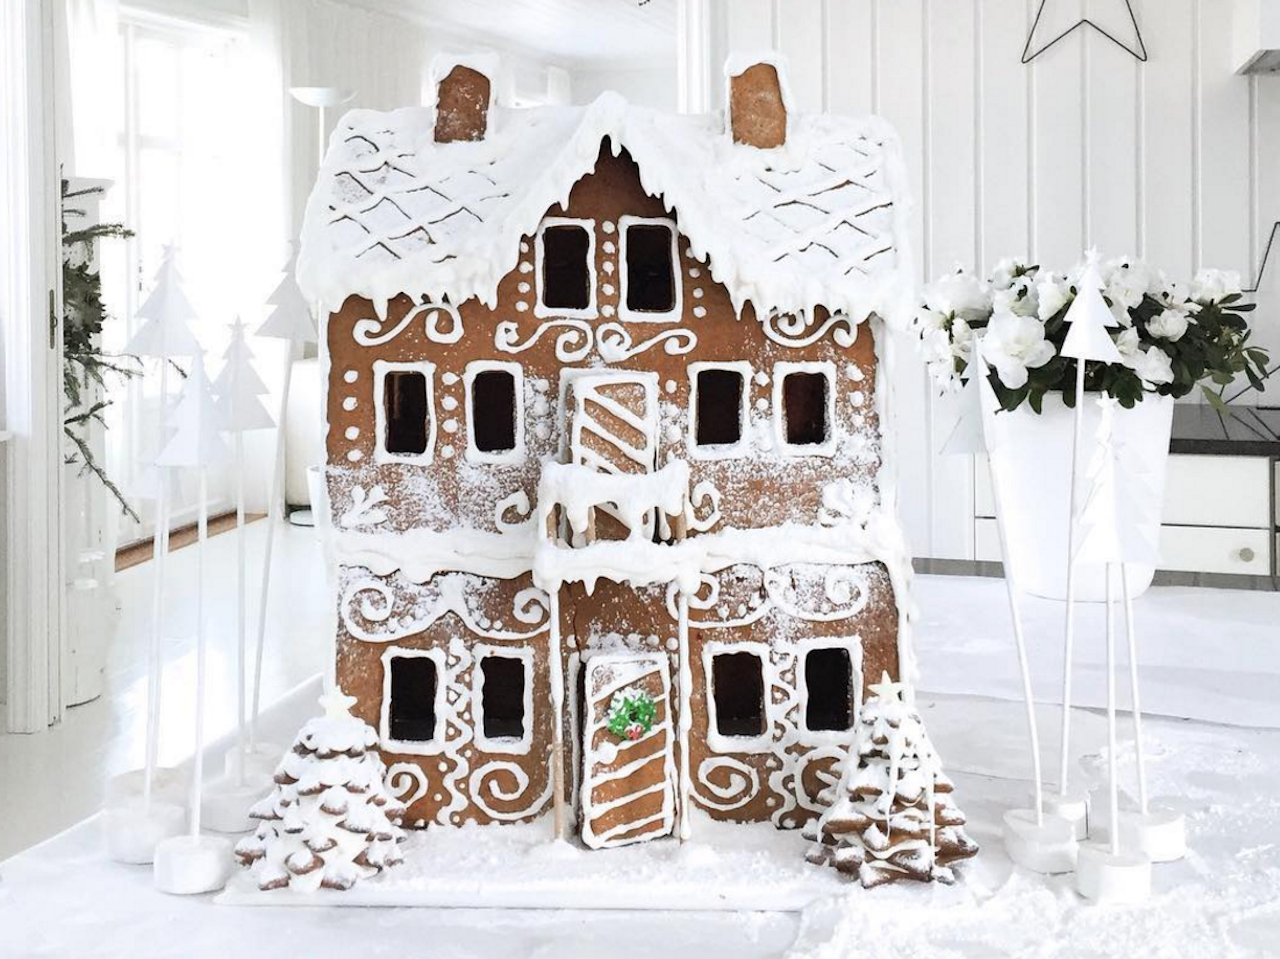 Three-story Gingerbread House